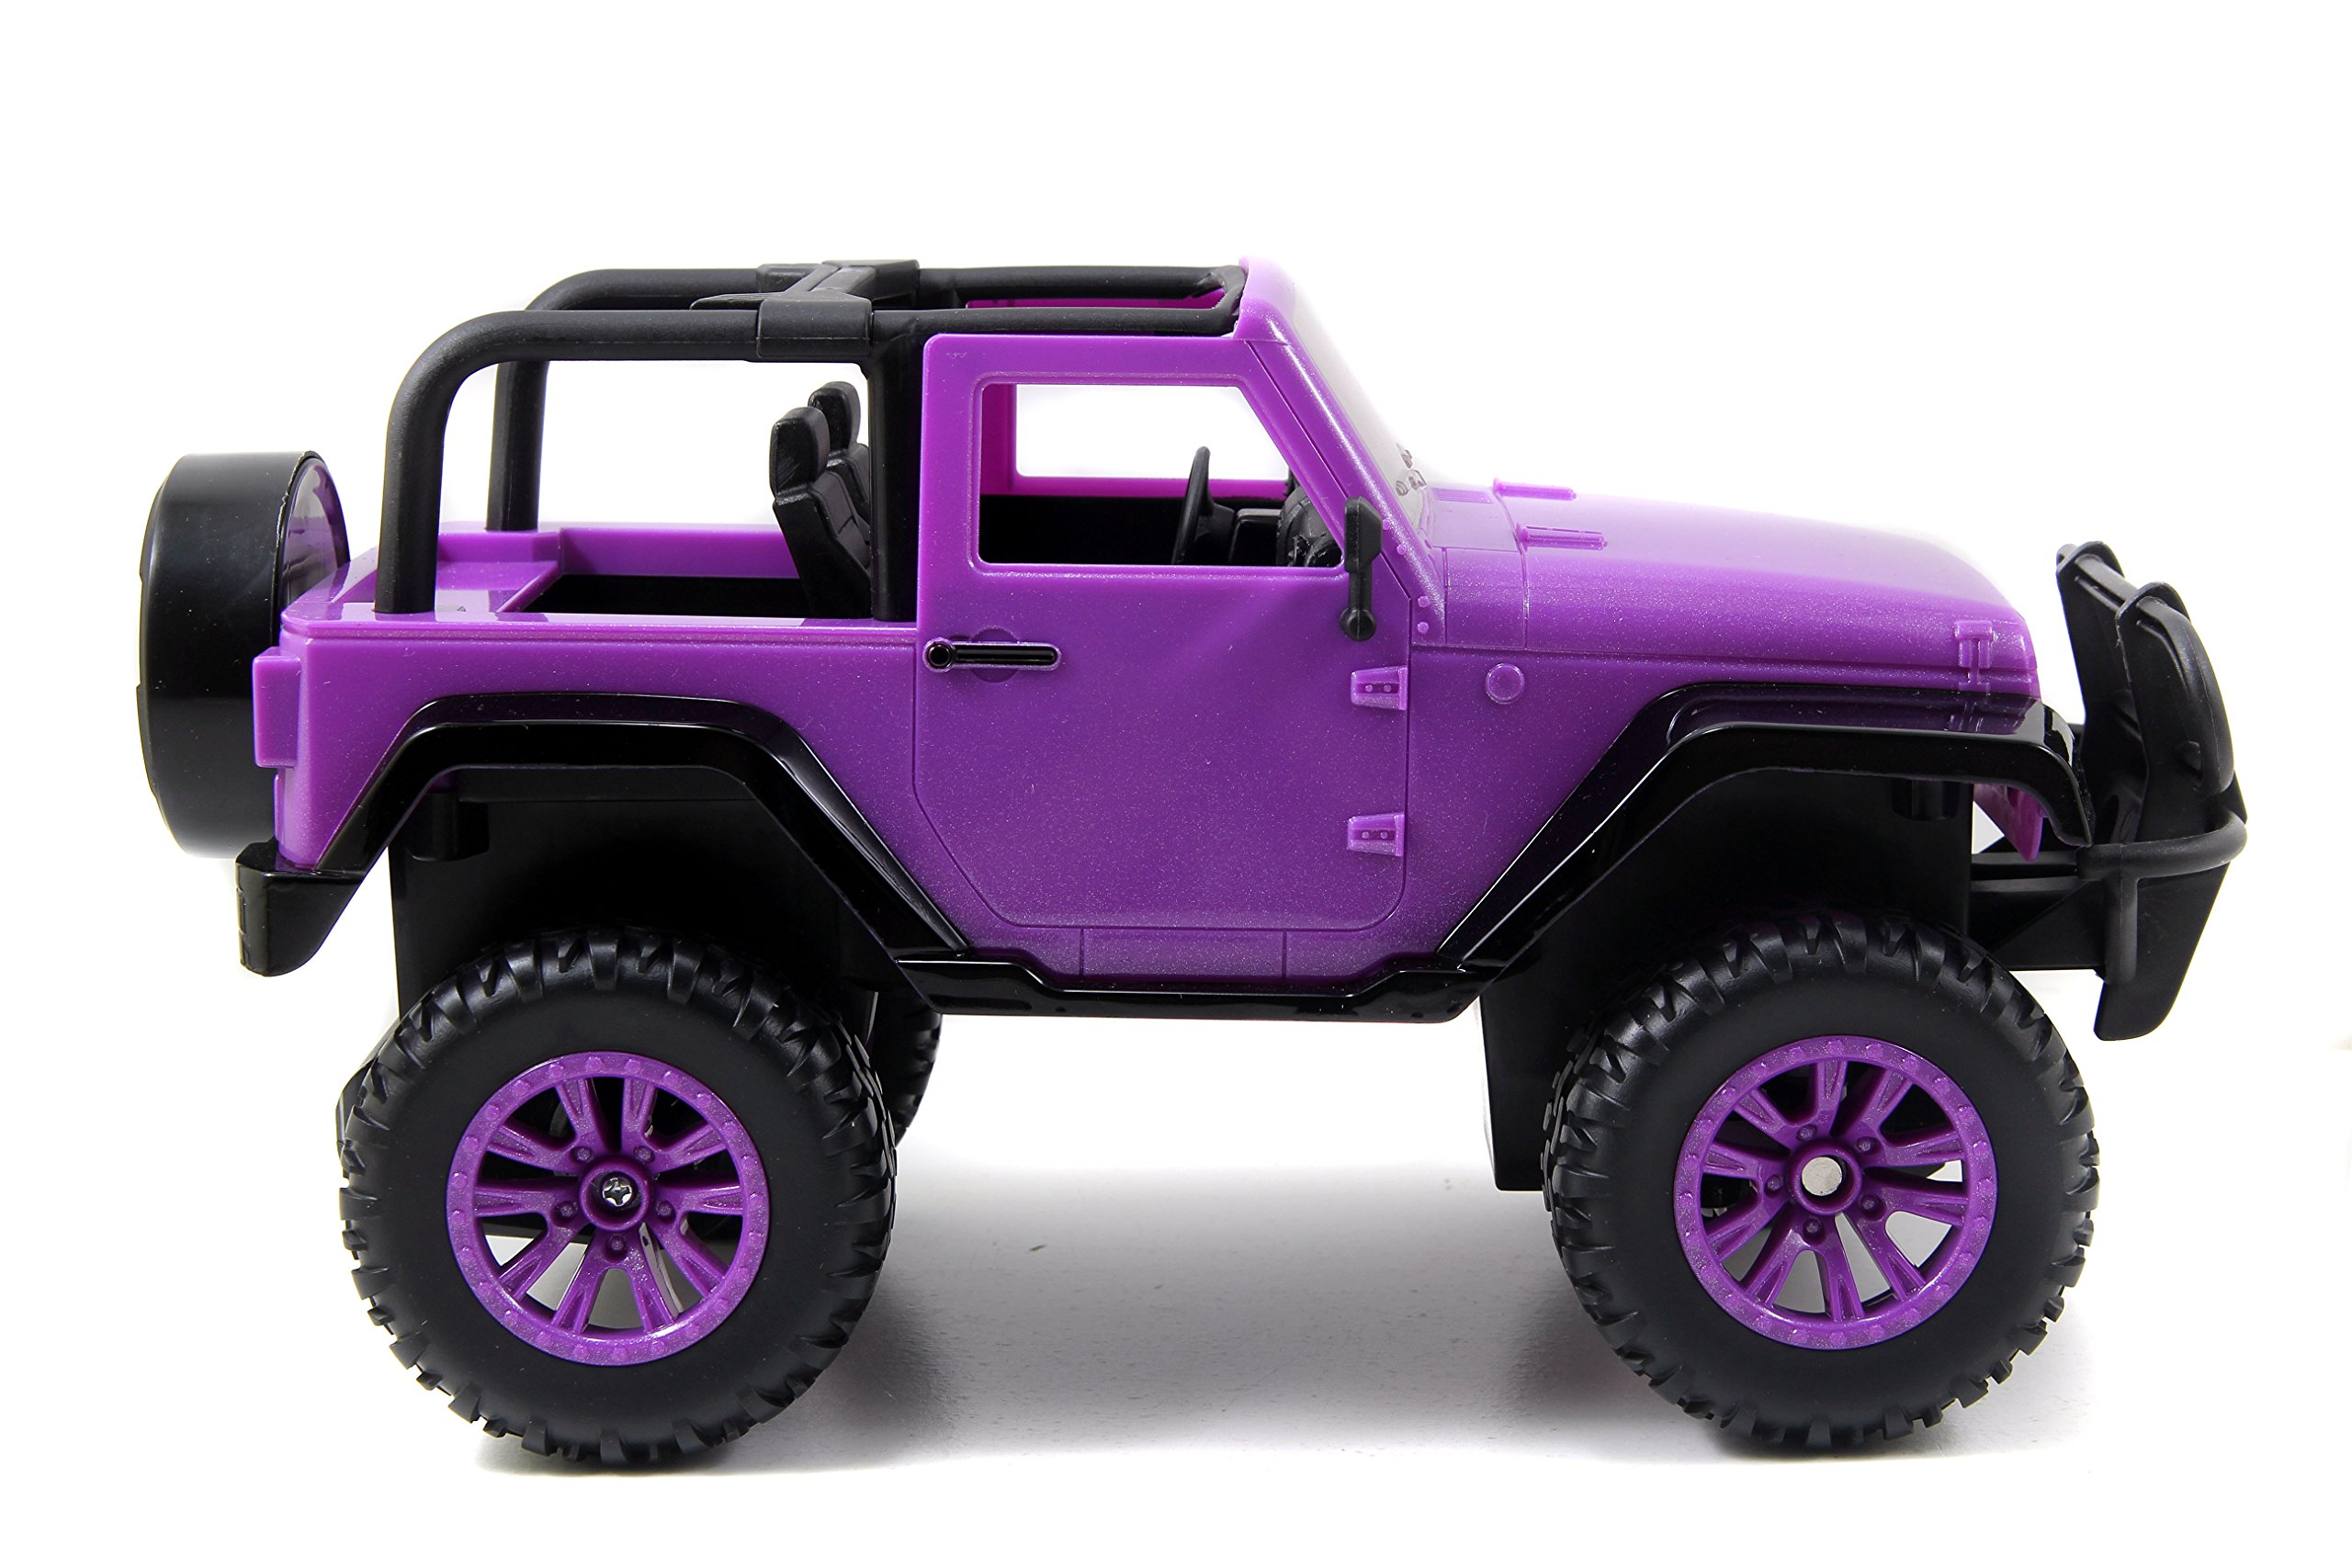 Jada Toys GIRLMAZING Big Foot Jeep R/C Vehicle (1:16 Scale), Purple by Jada Toys (Image #4)